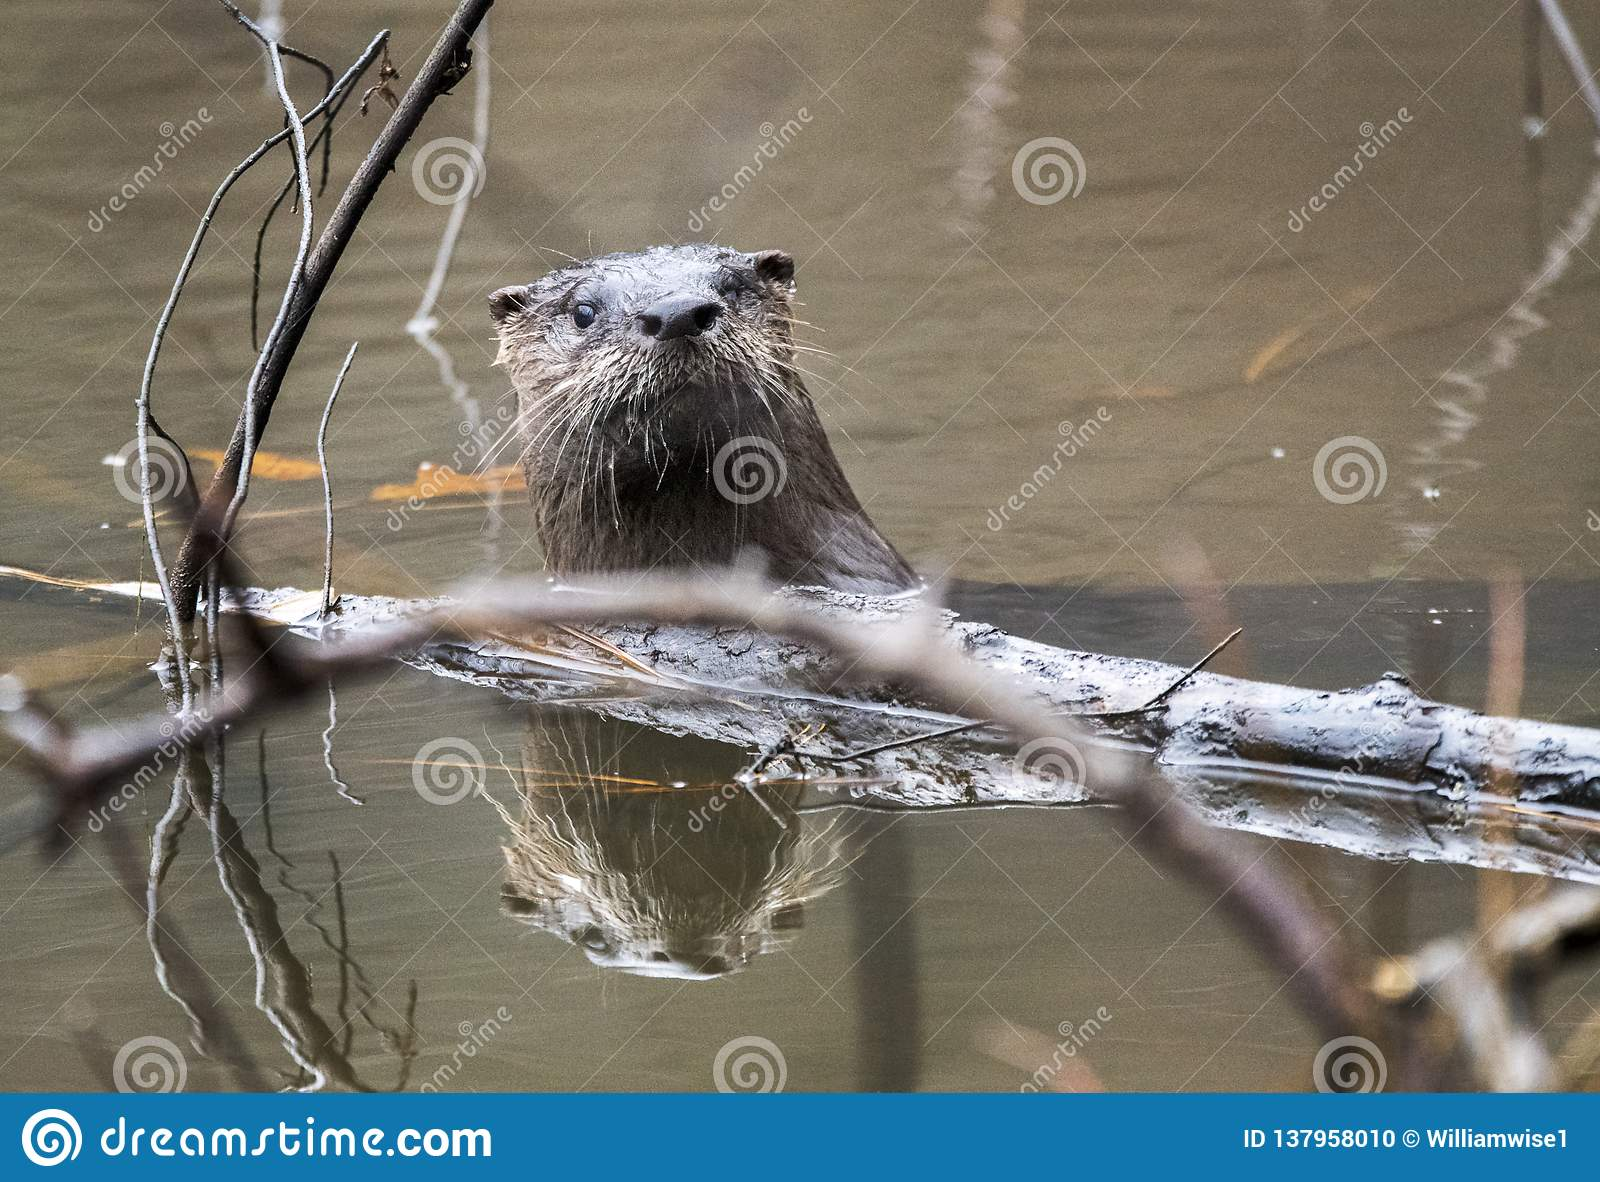 River Otter swimming in muddy Georgia pond, USA